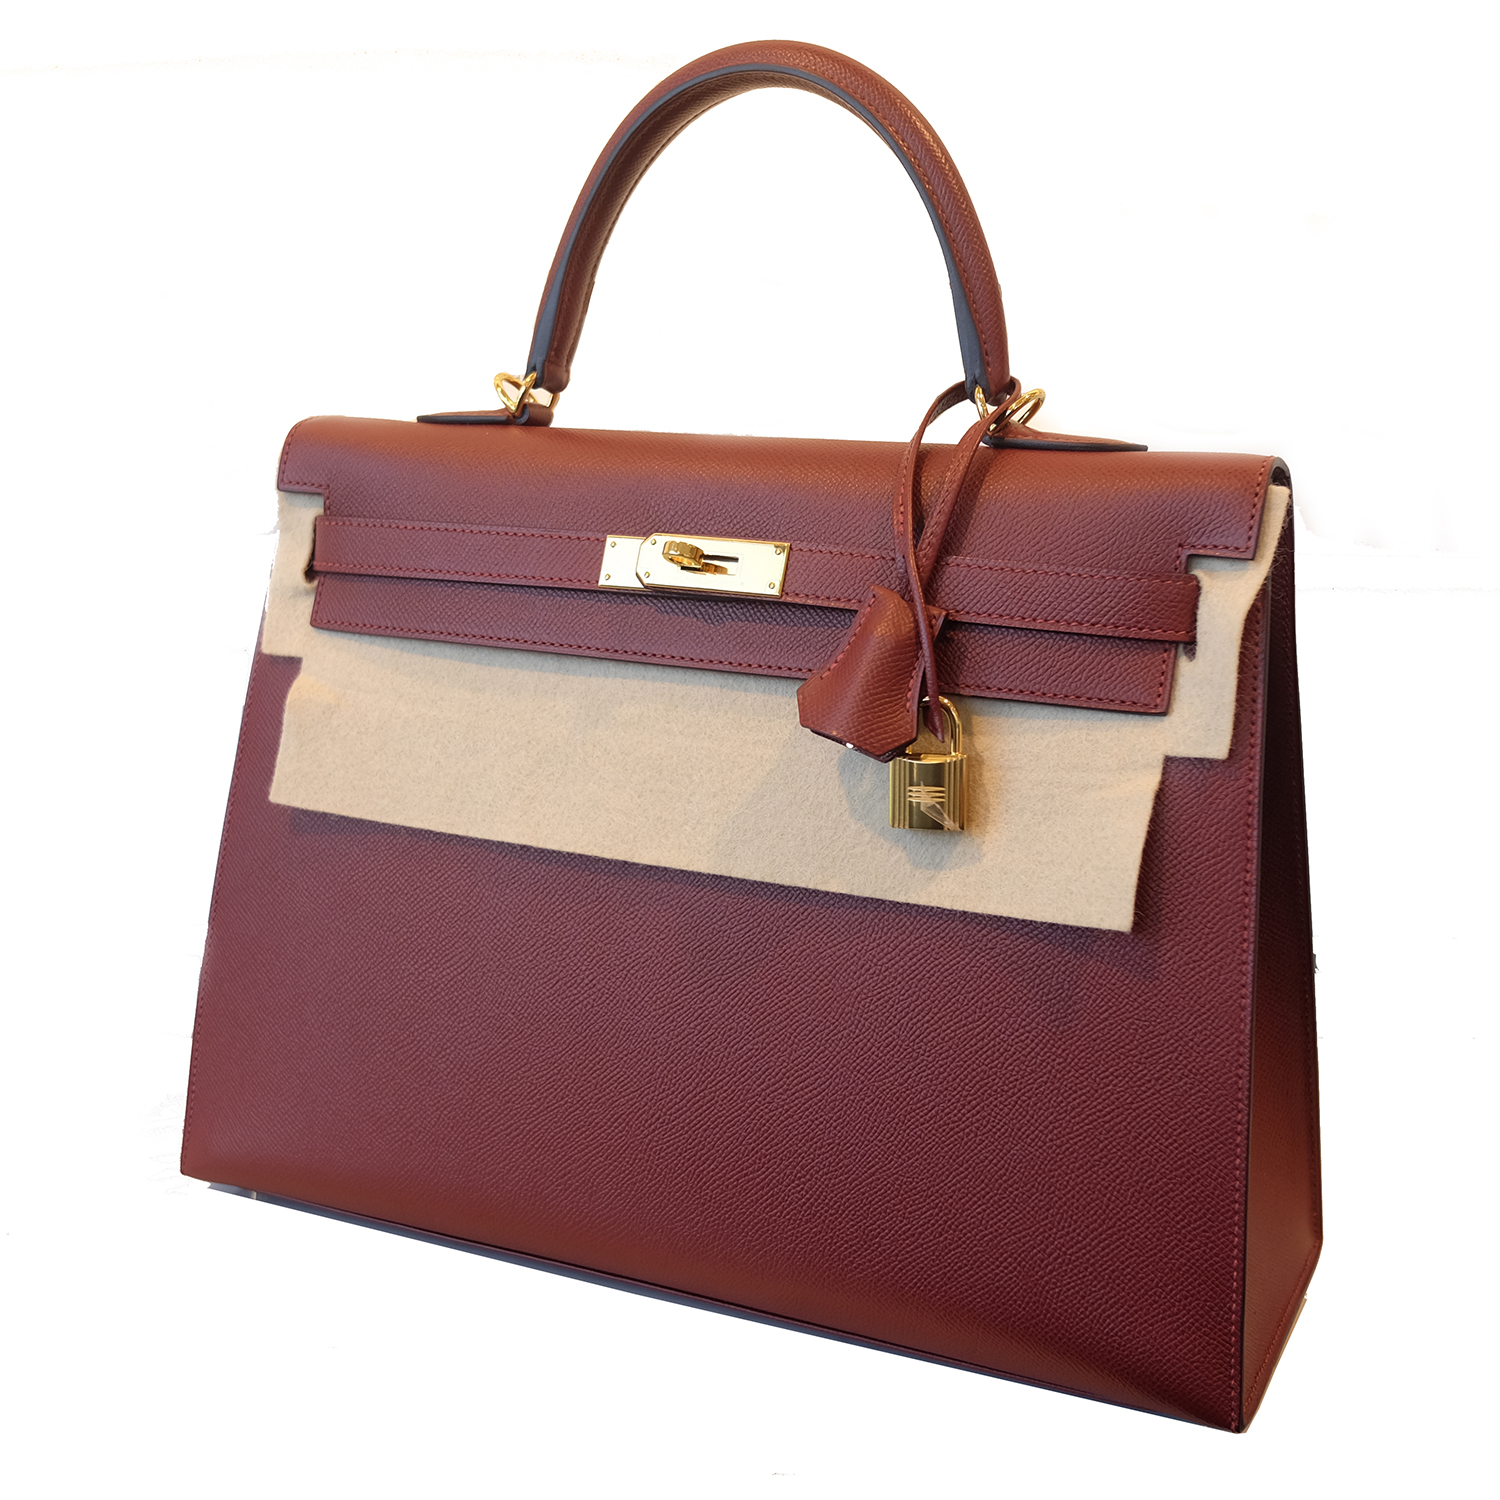 Are you looking for an authentic BRAND NEW Hermès Kelly Sellier Contour 35 Epsom Rouge H GHW?